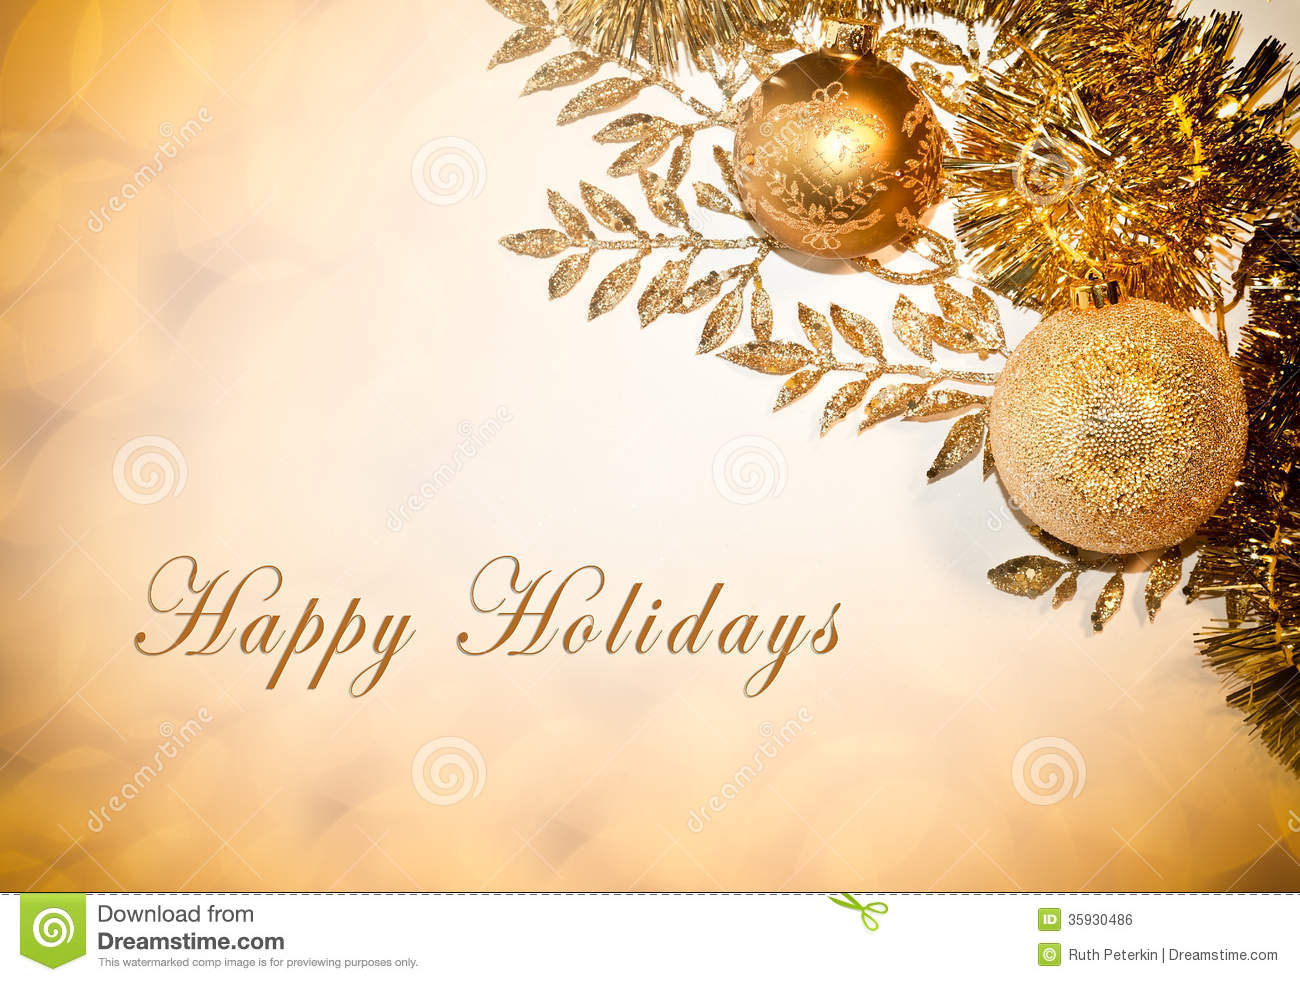 Happy holidays business card yeniscale happy holidays business card reheart Image collections